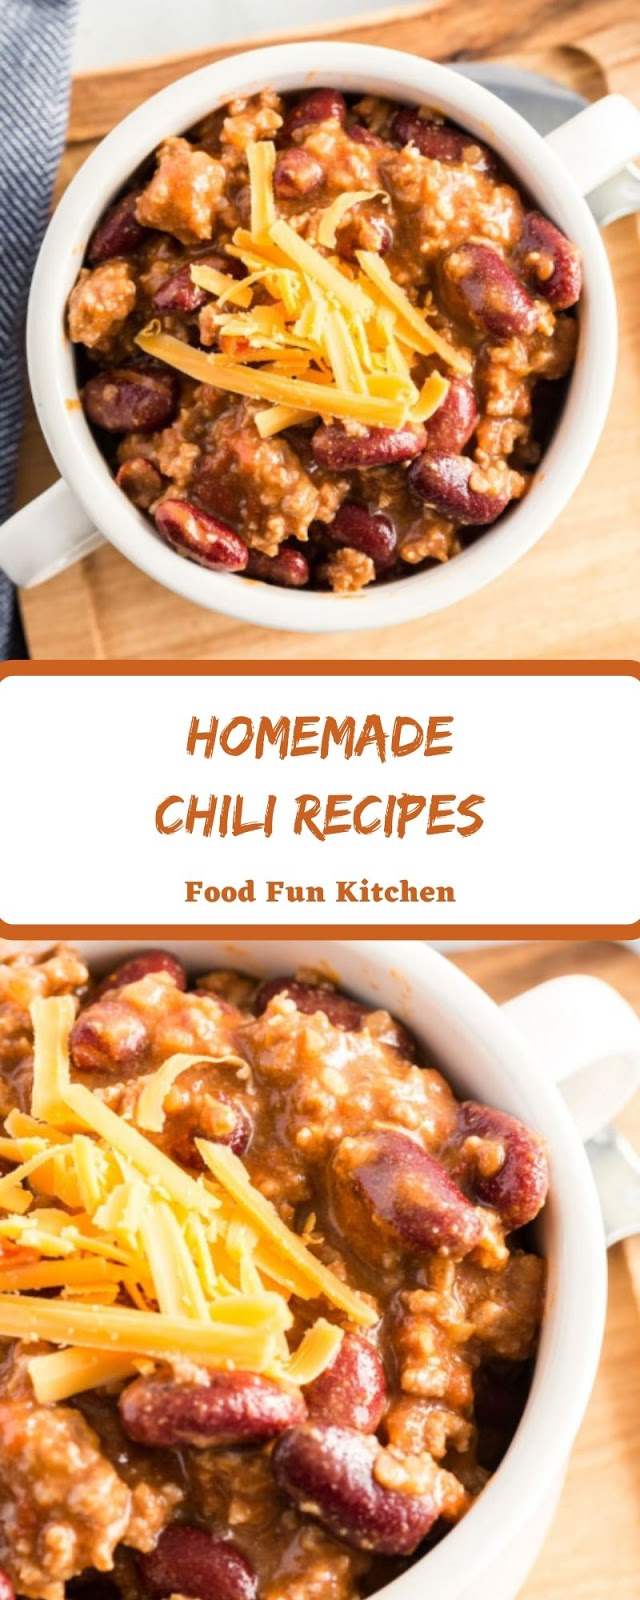 HOMEMADE CHILI RECIPES